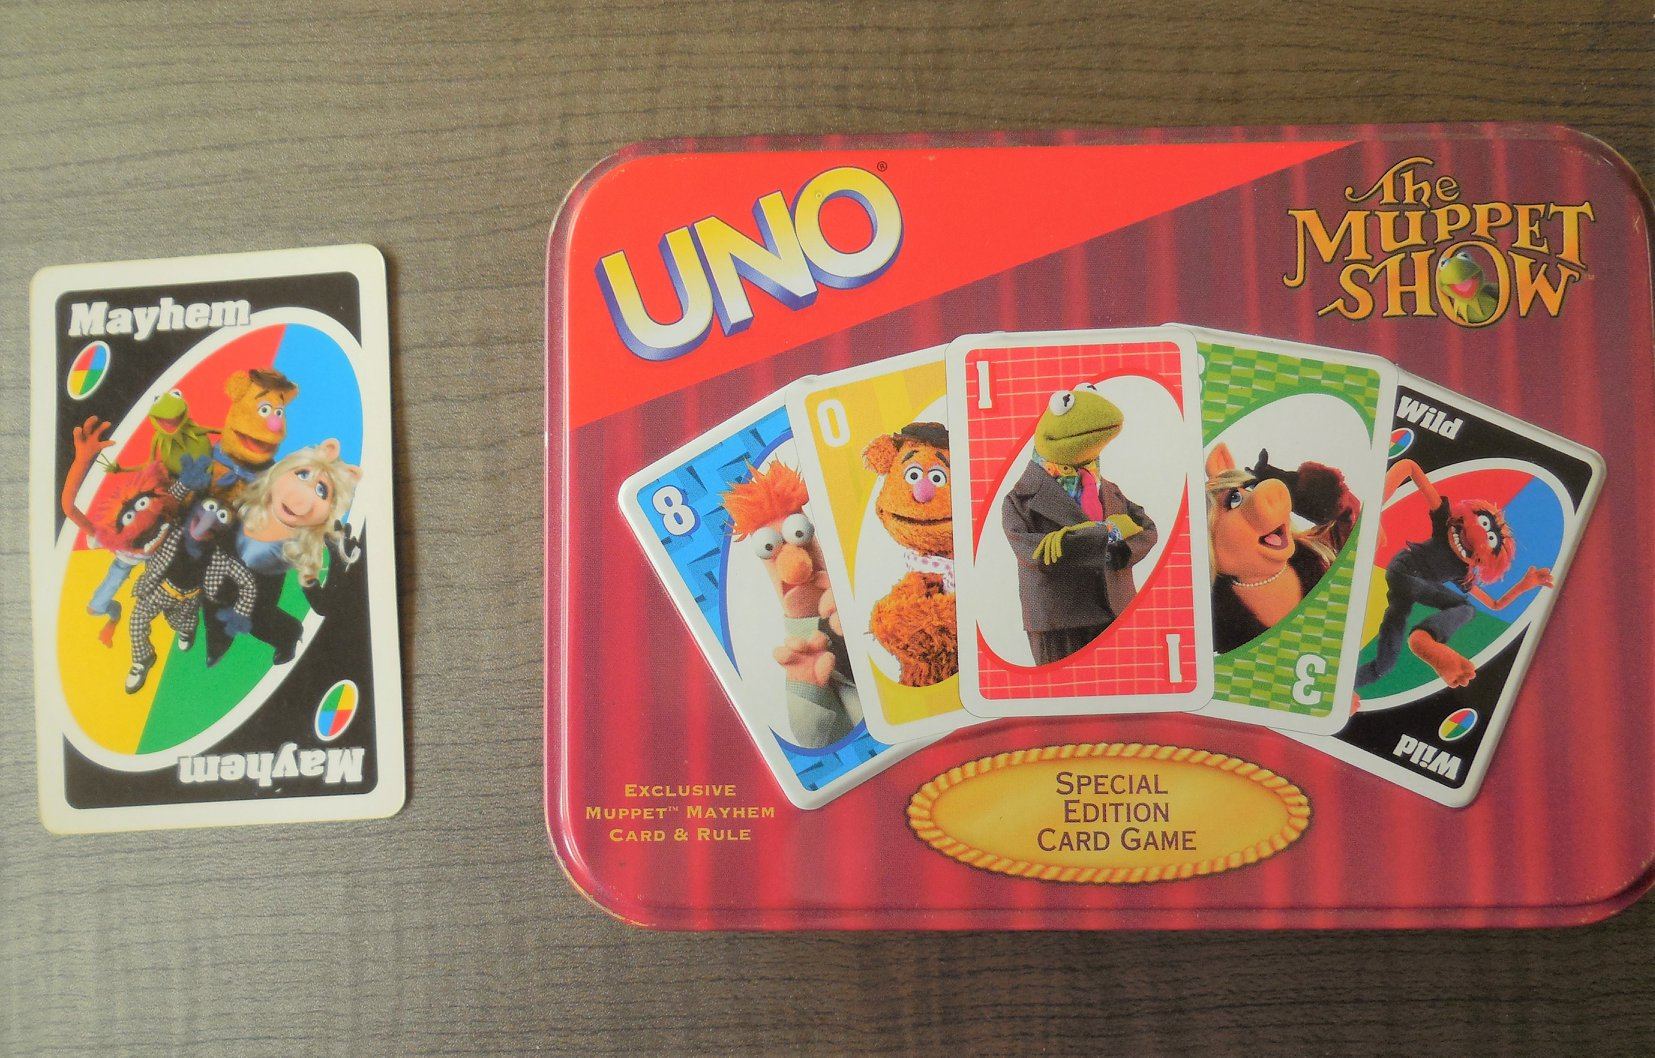 The Muppet Show Uno Card Game